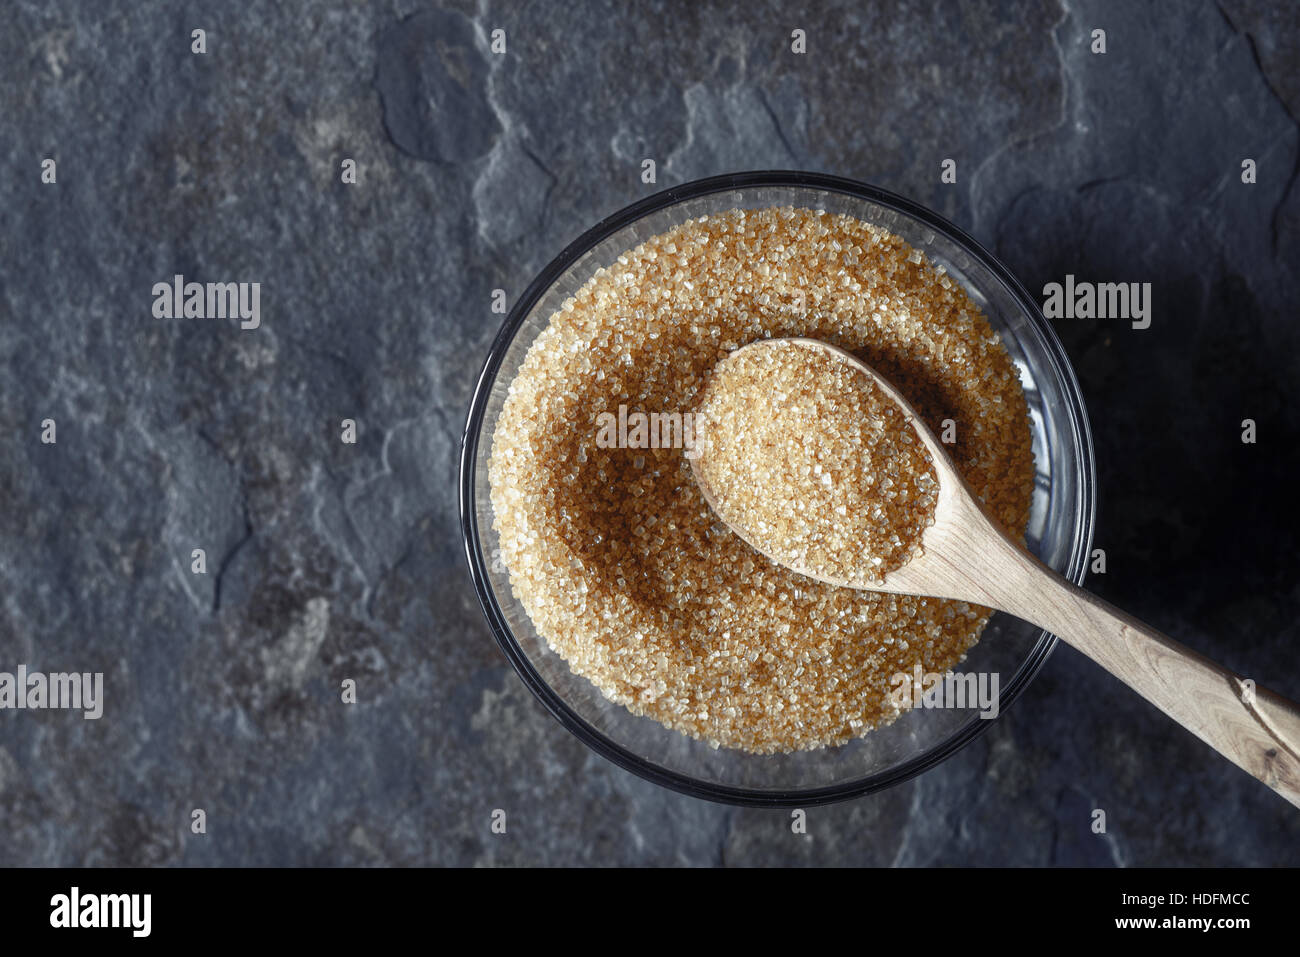 Brown sugar in the glass bowl on the stone background top view - Stock Image